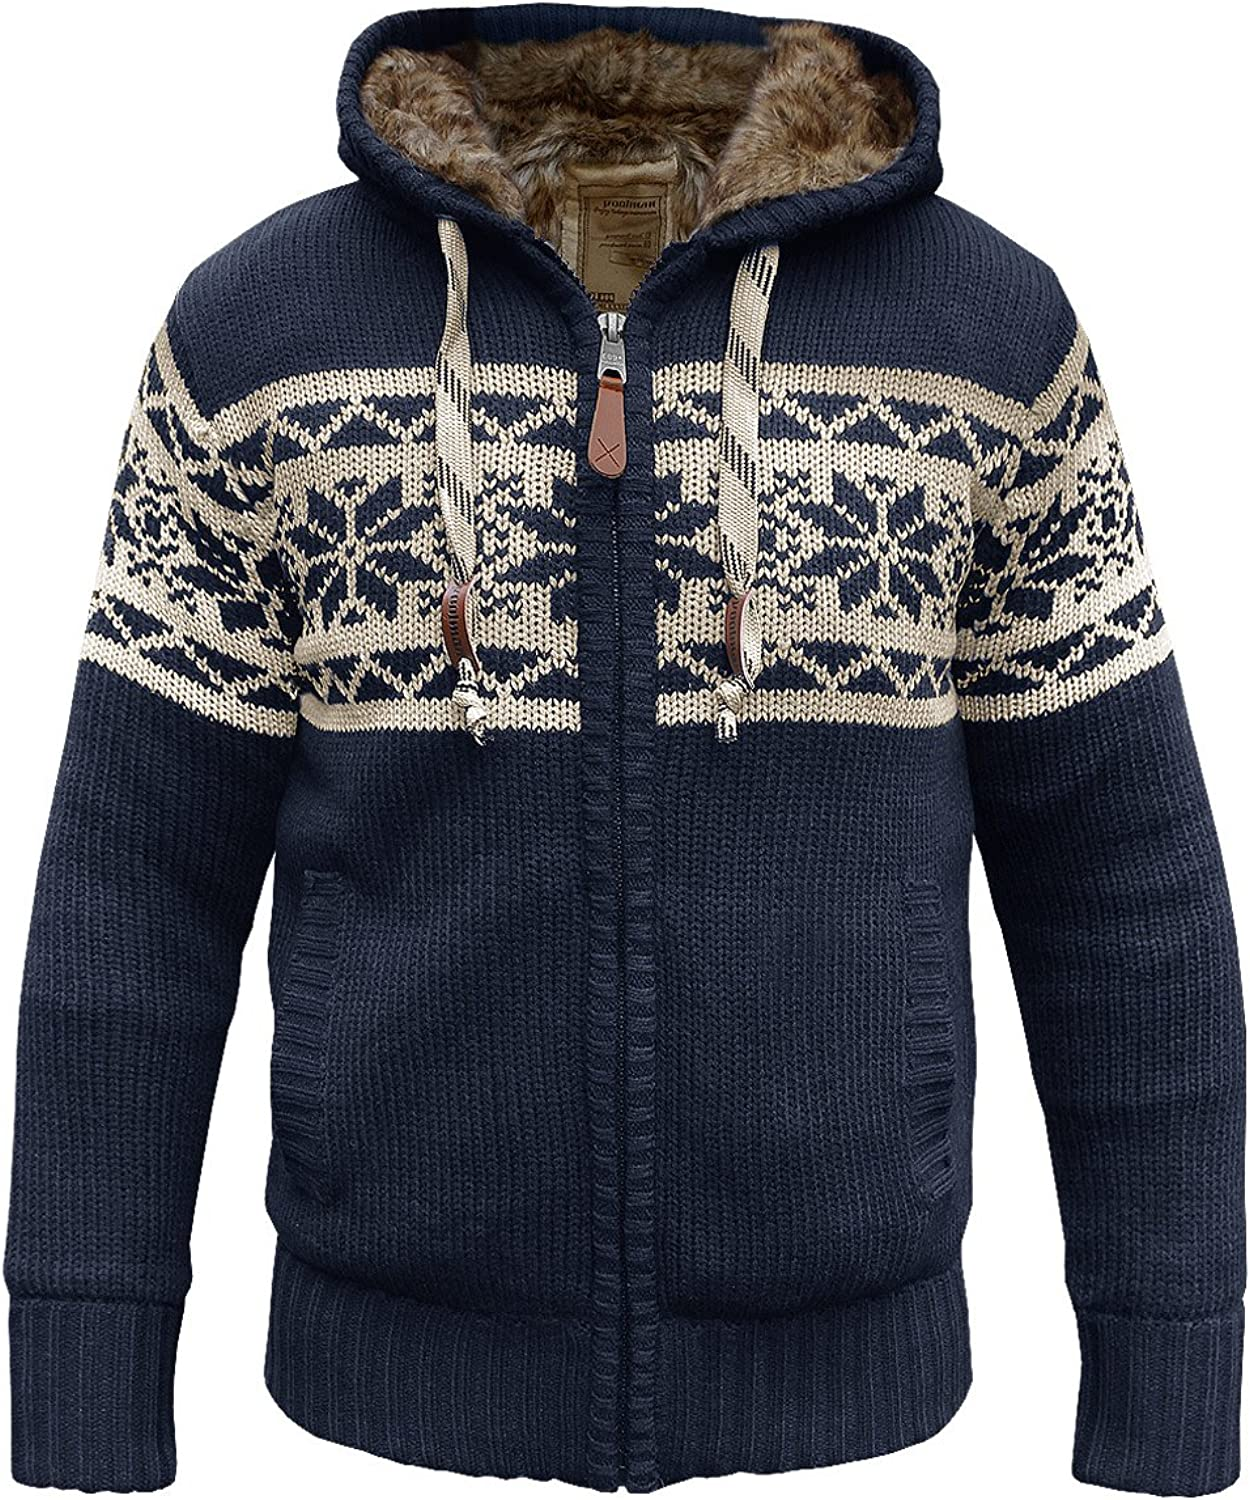 Poolman Nordic Knitted Hooded Jacket, Lined with Fur